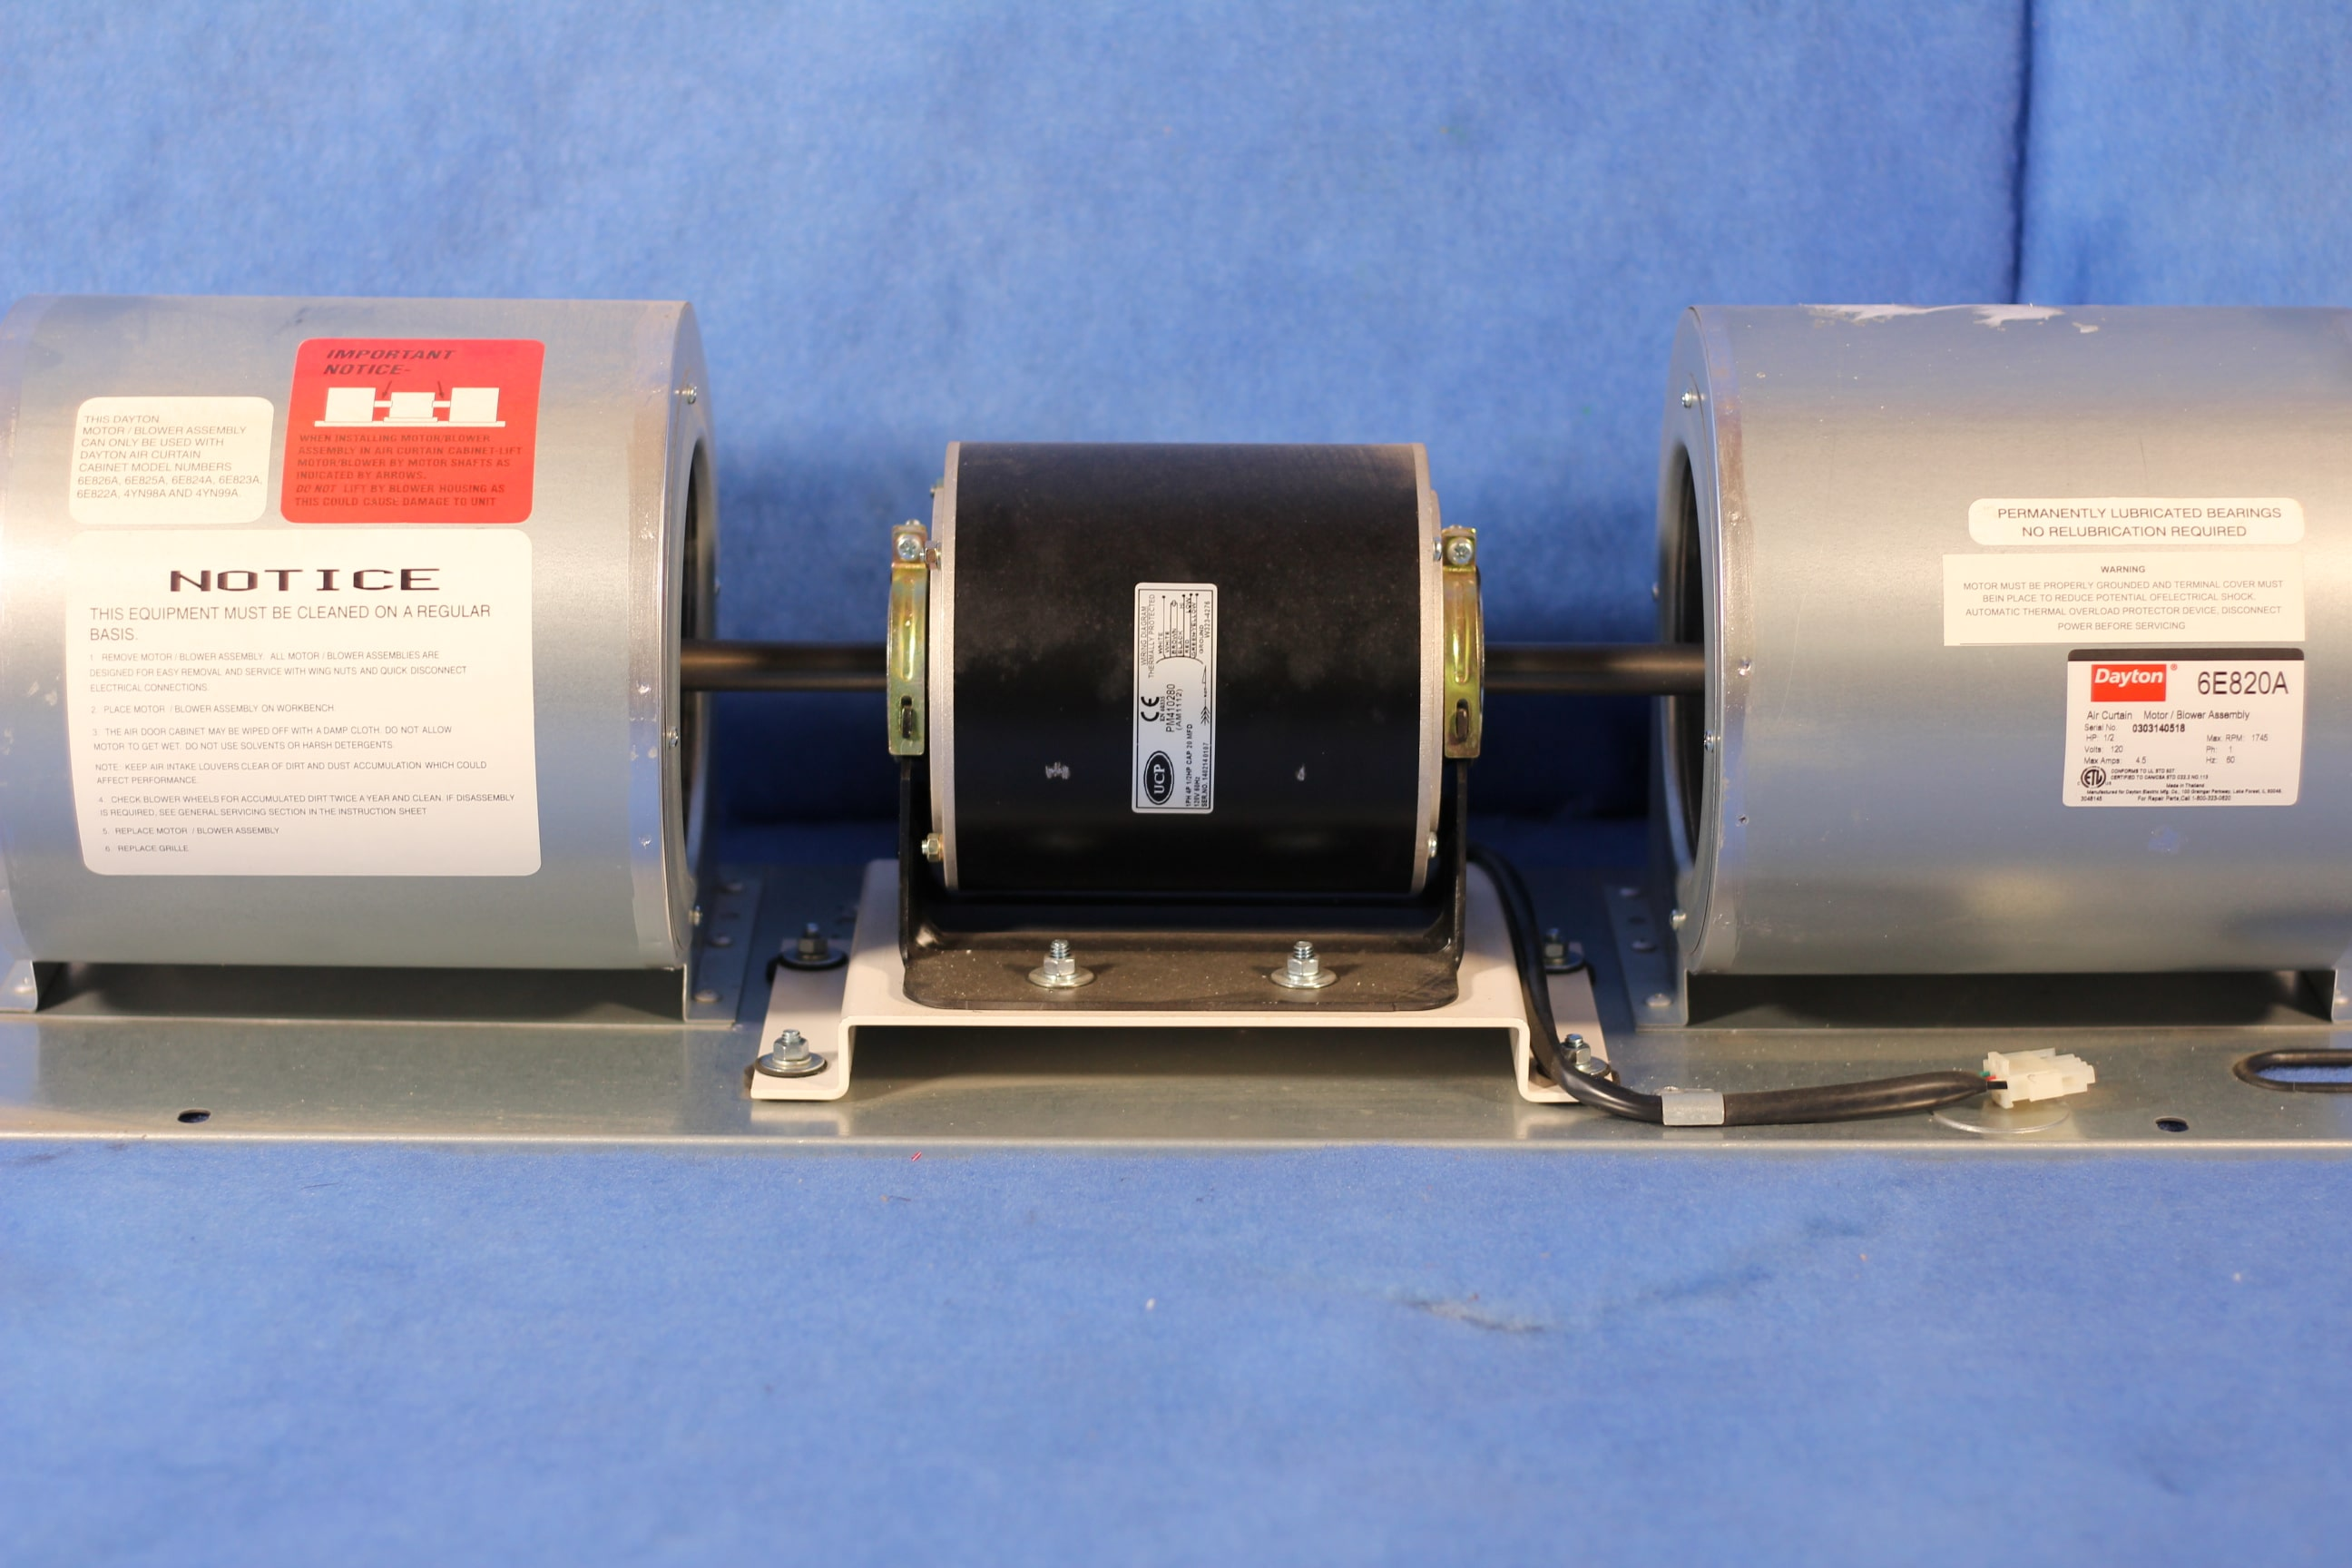 https www integrityelectricdirect com shop motors dayton air curtain blower motor assembly se820a 1 year warranty